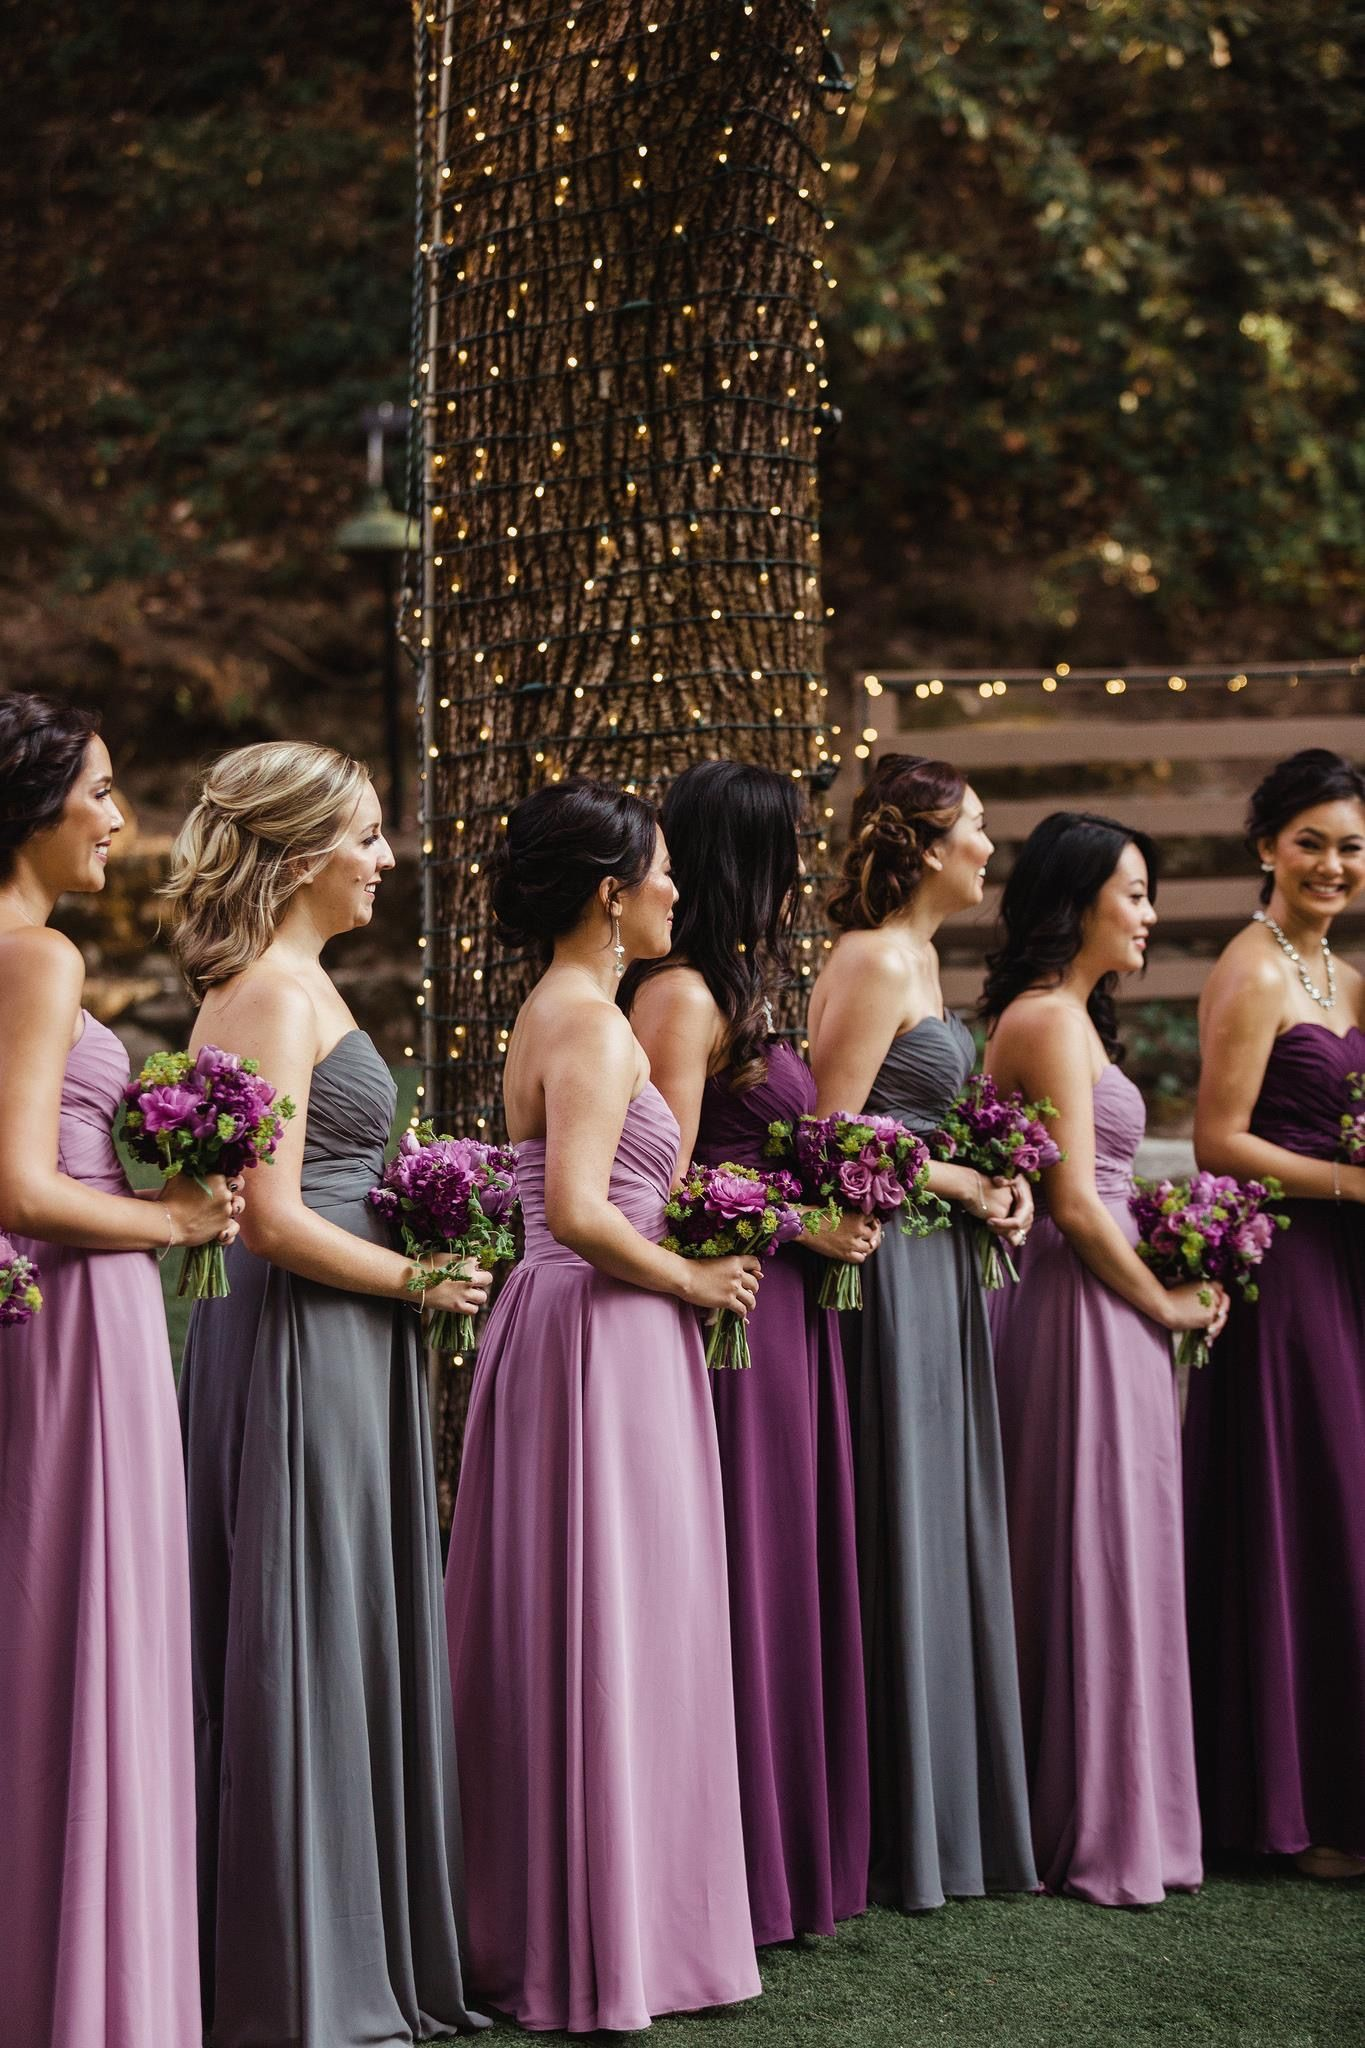 Pin By Genevieve Frias On Romantic Glam Wedding Lavender Bridesmaid Dresses Purple Bridesmaid Dresses Lavender Bridesmaid